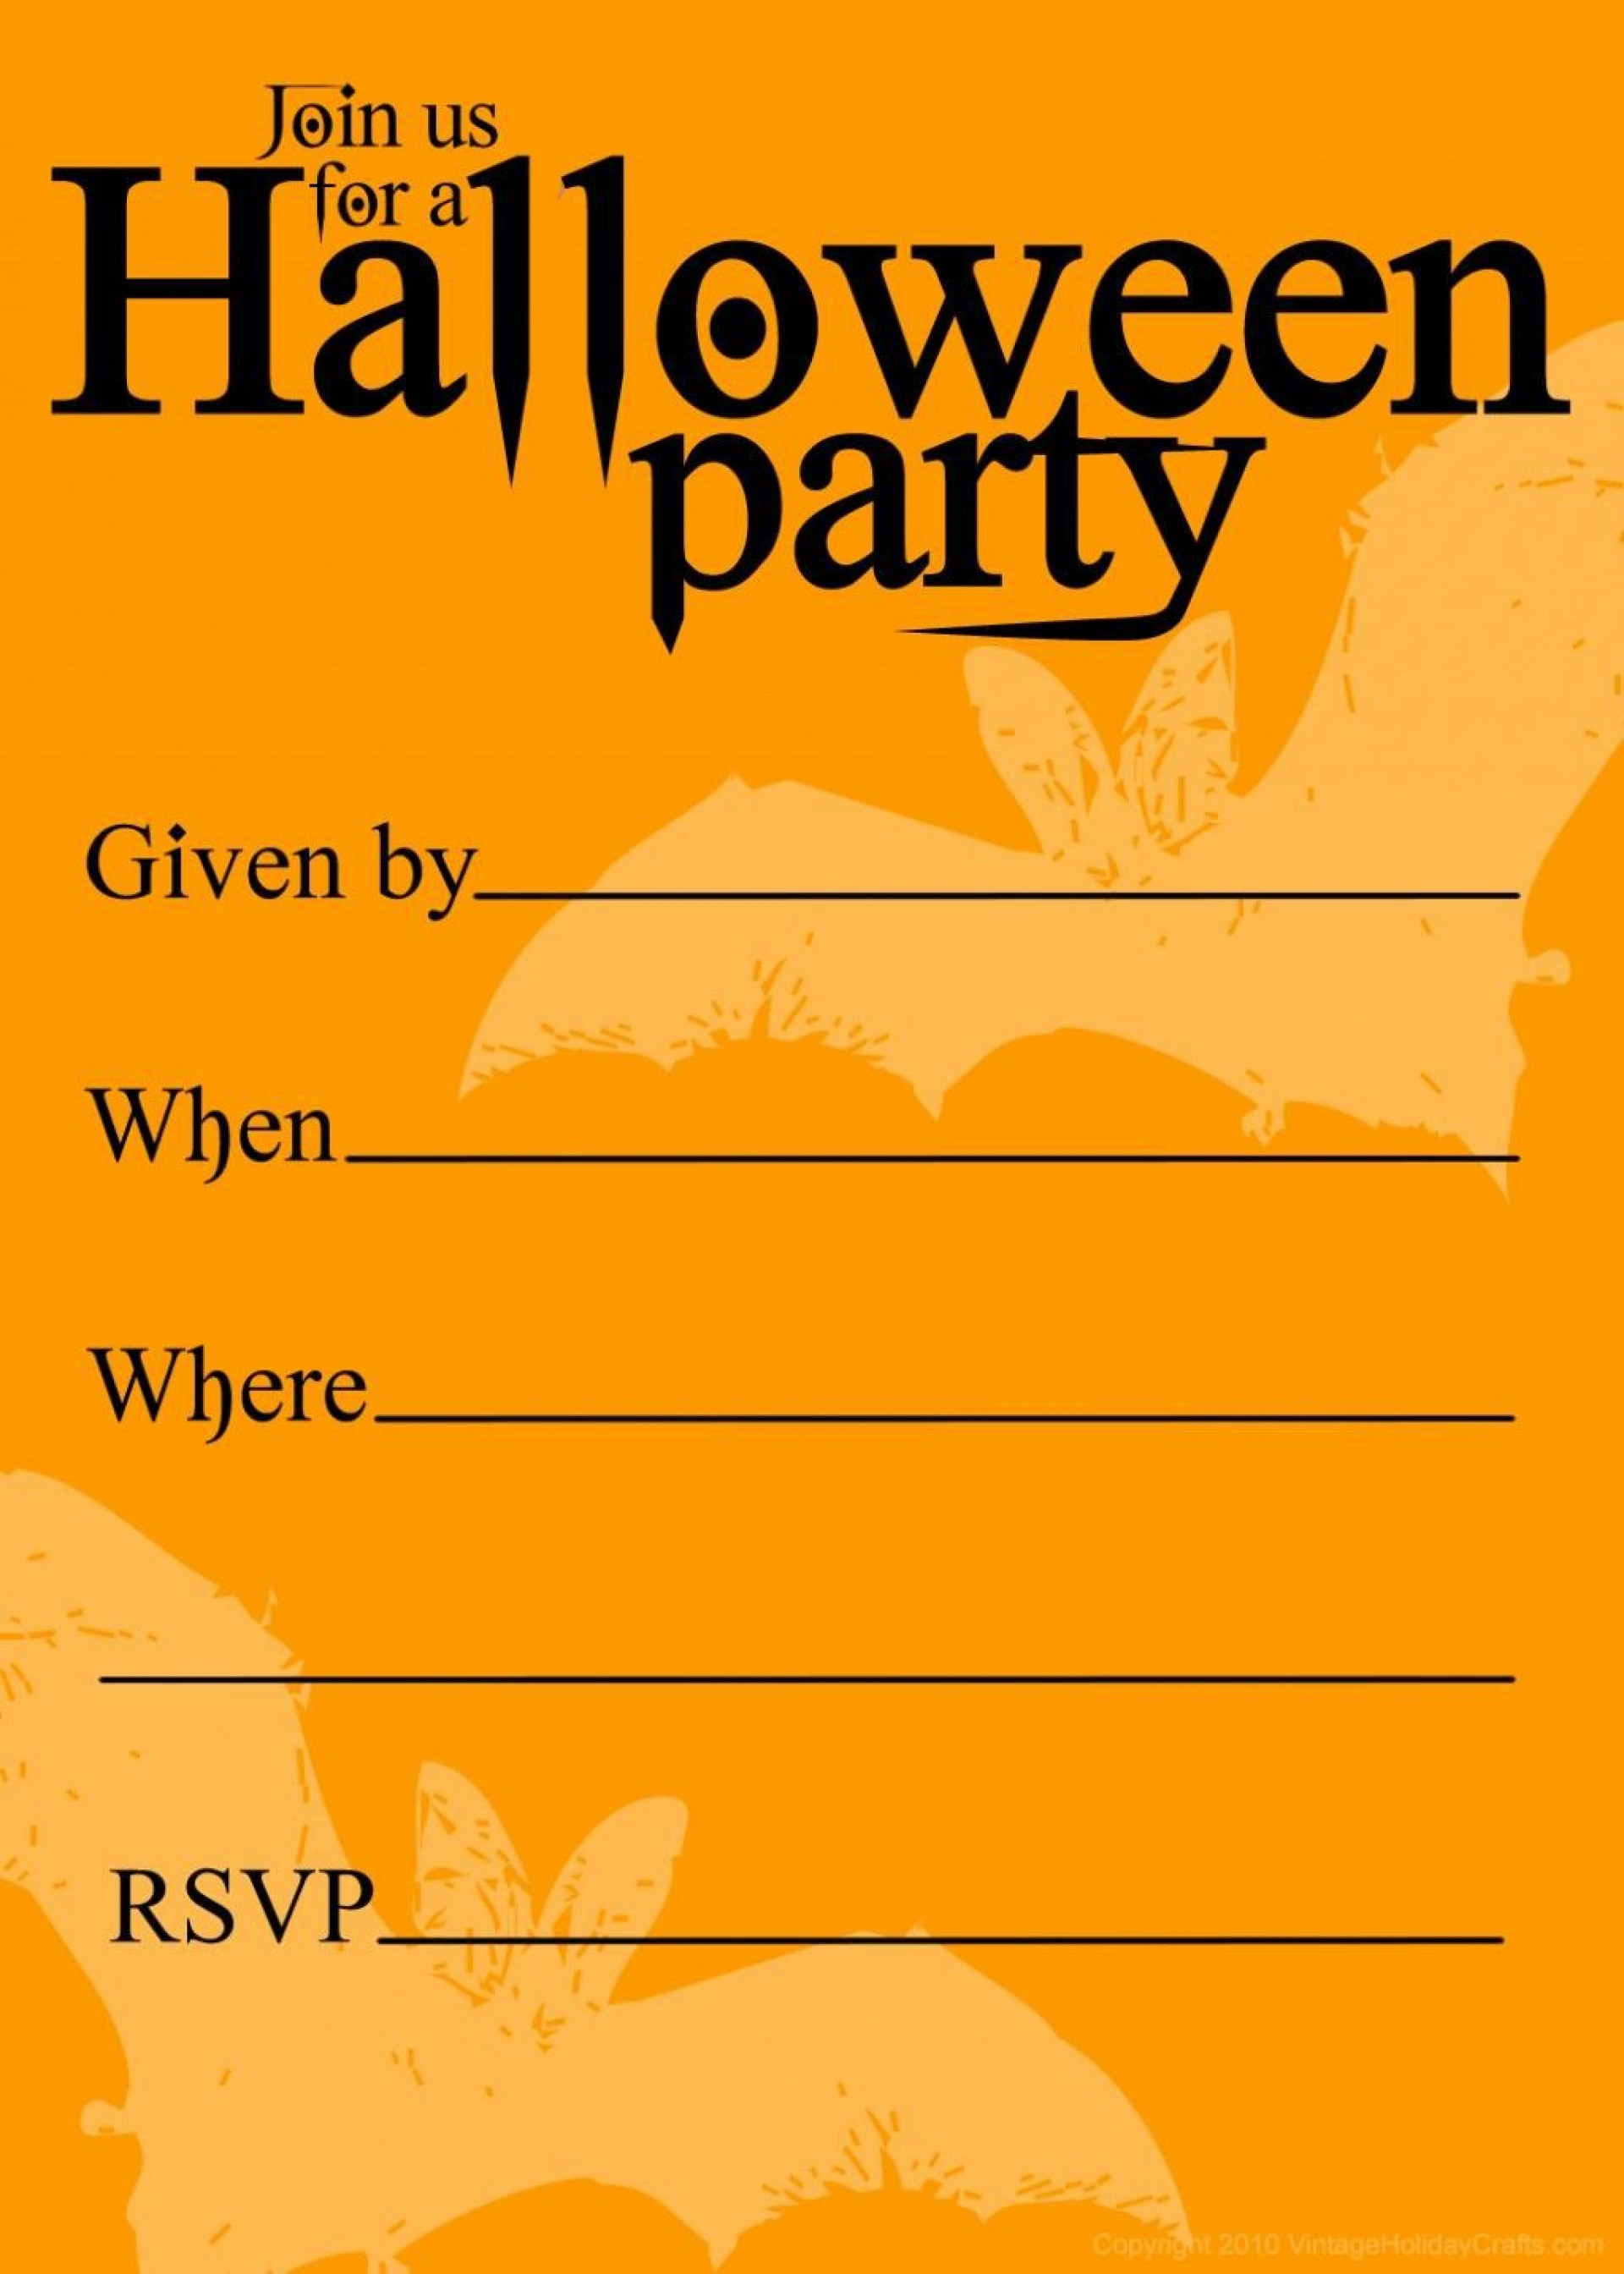 003 Surprising Halloween Party Invitation Template Picture  Microsoft Block October1920